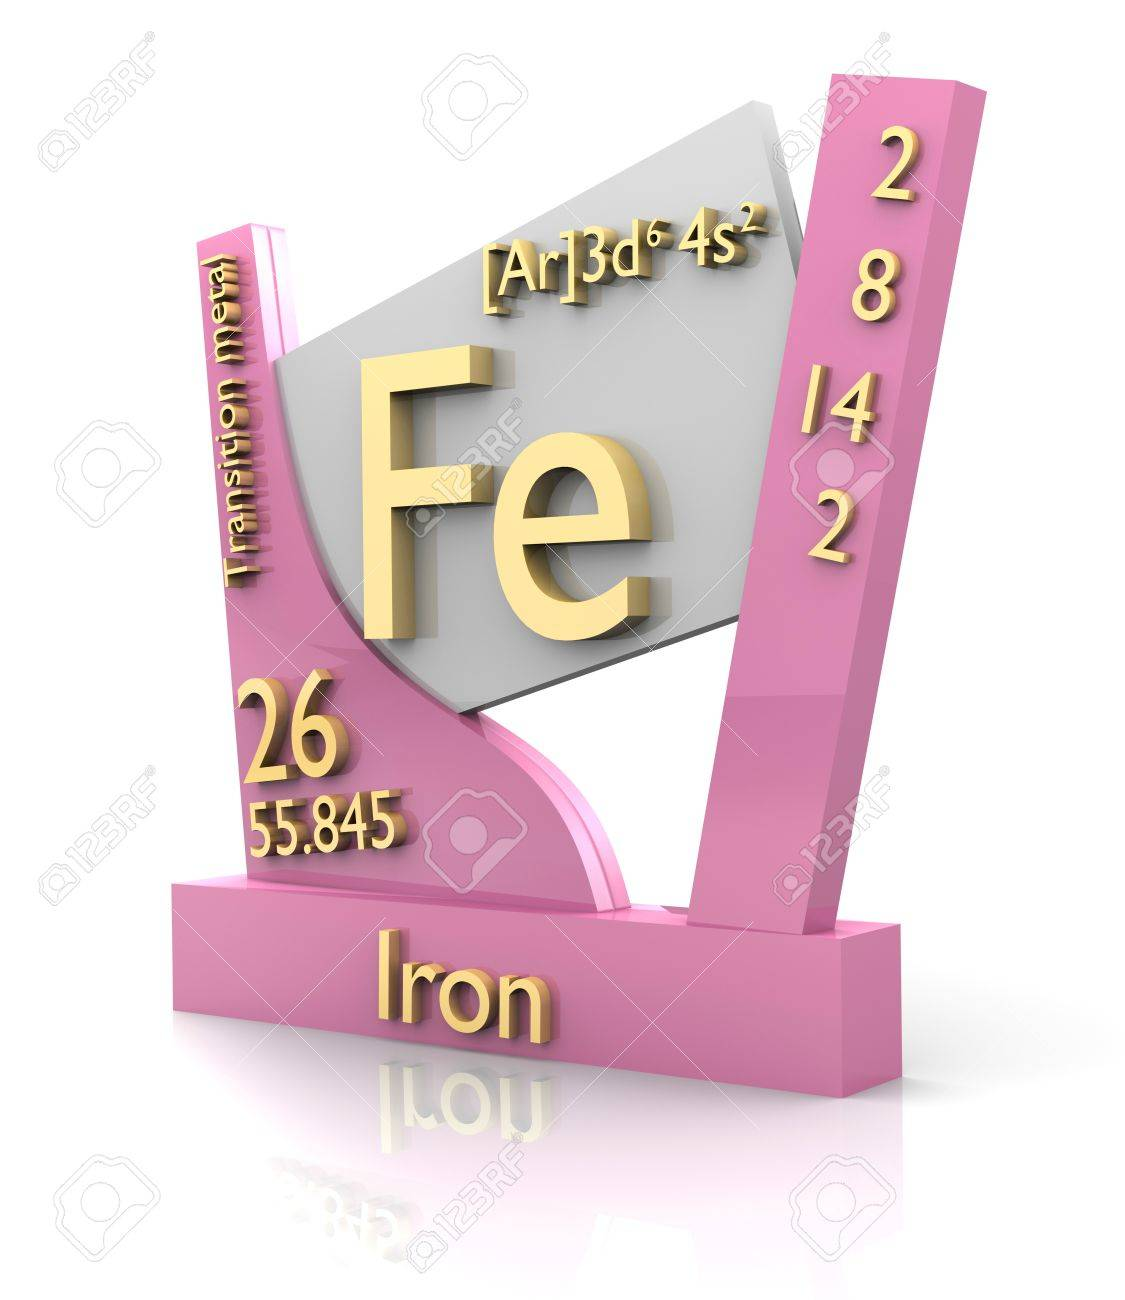 Periodic table element fe gallery periodic table images periodic table symbol for iron images periodic table images periodic table symbol for iron gallery periodic gamestrikefo Image collections